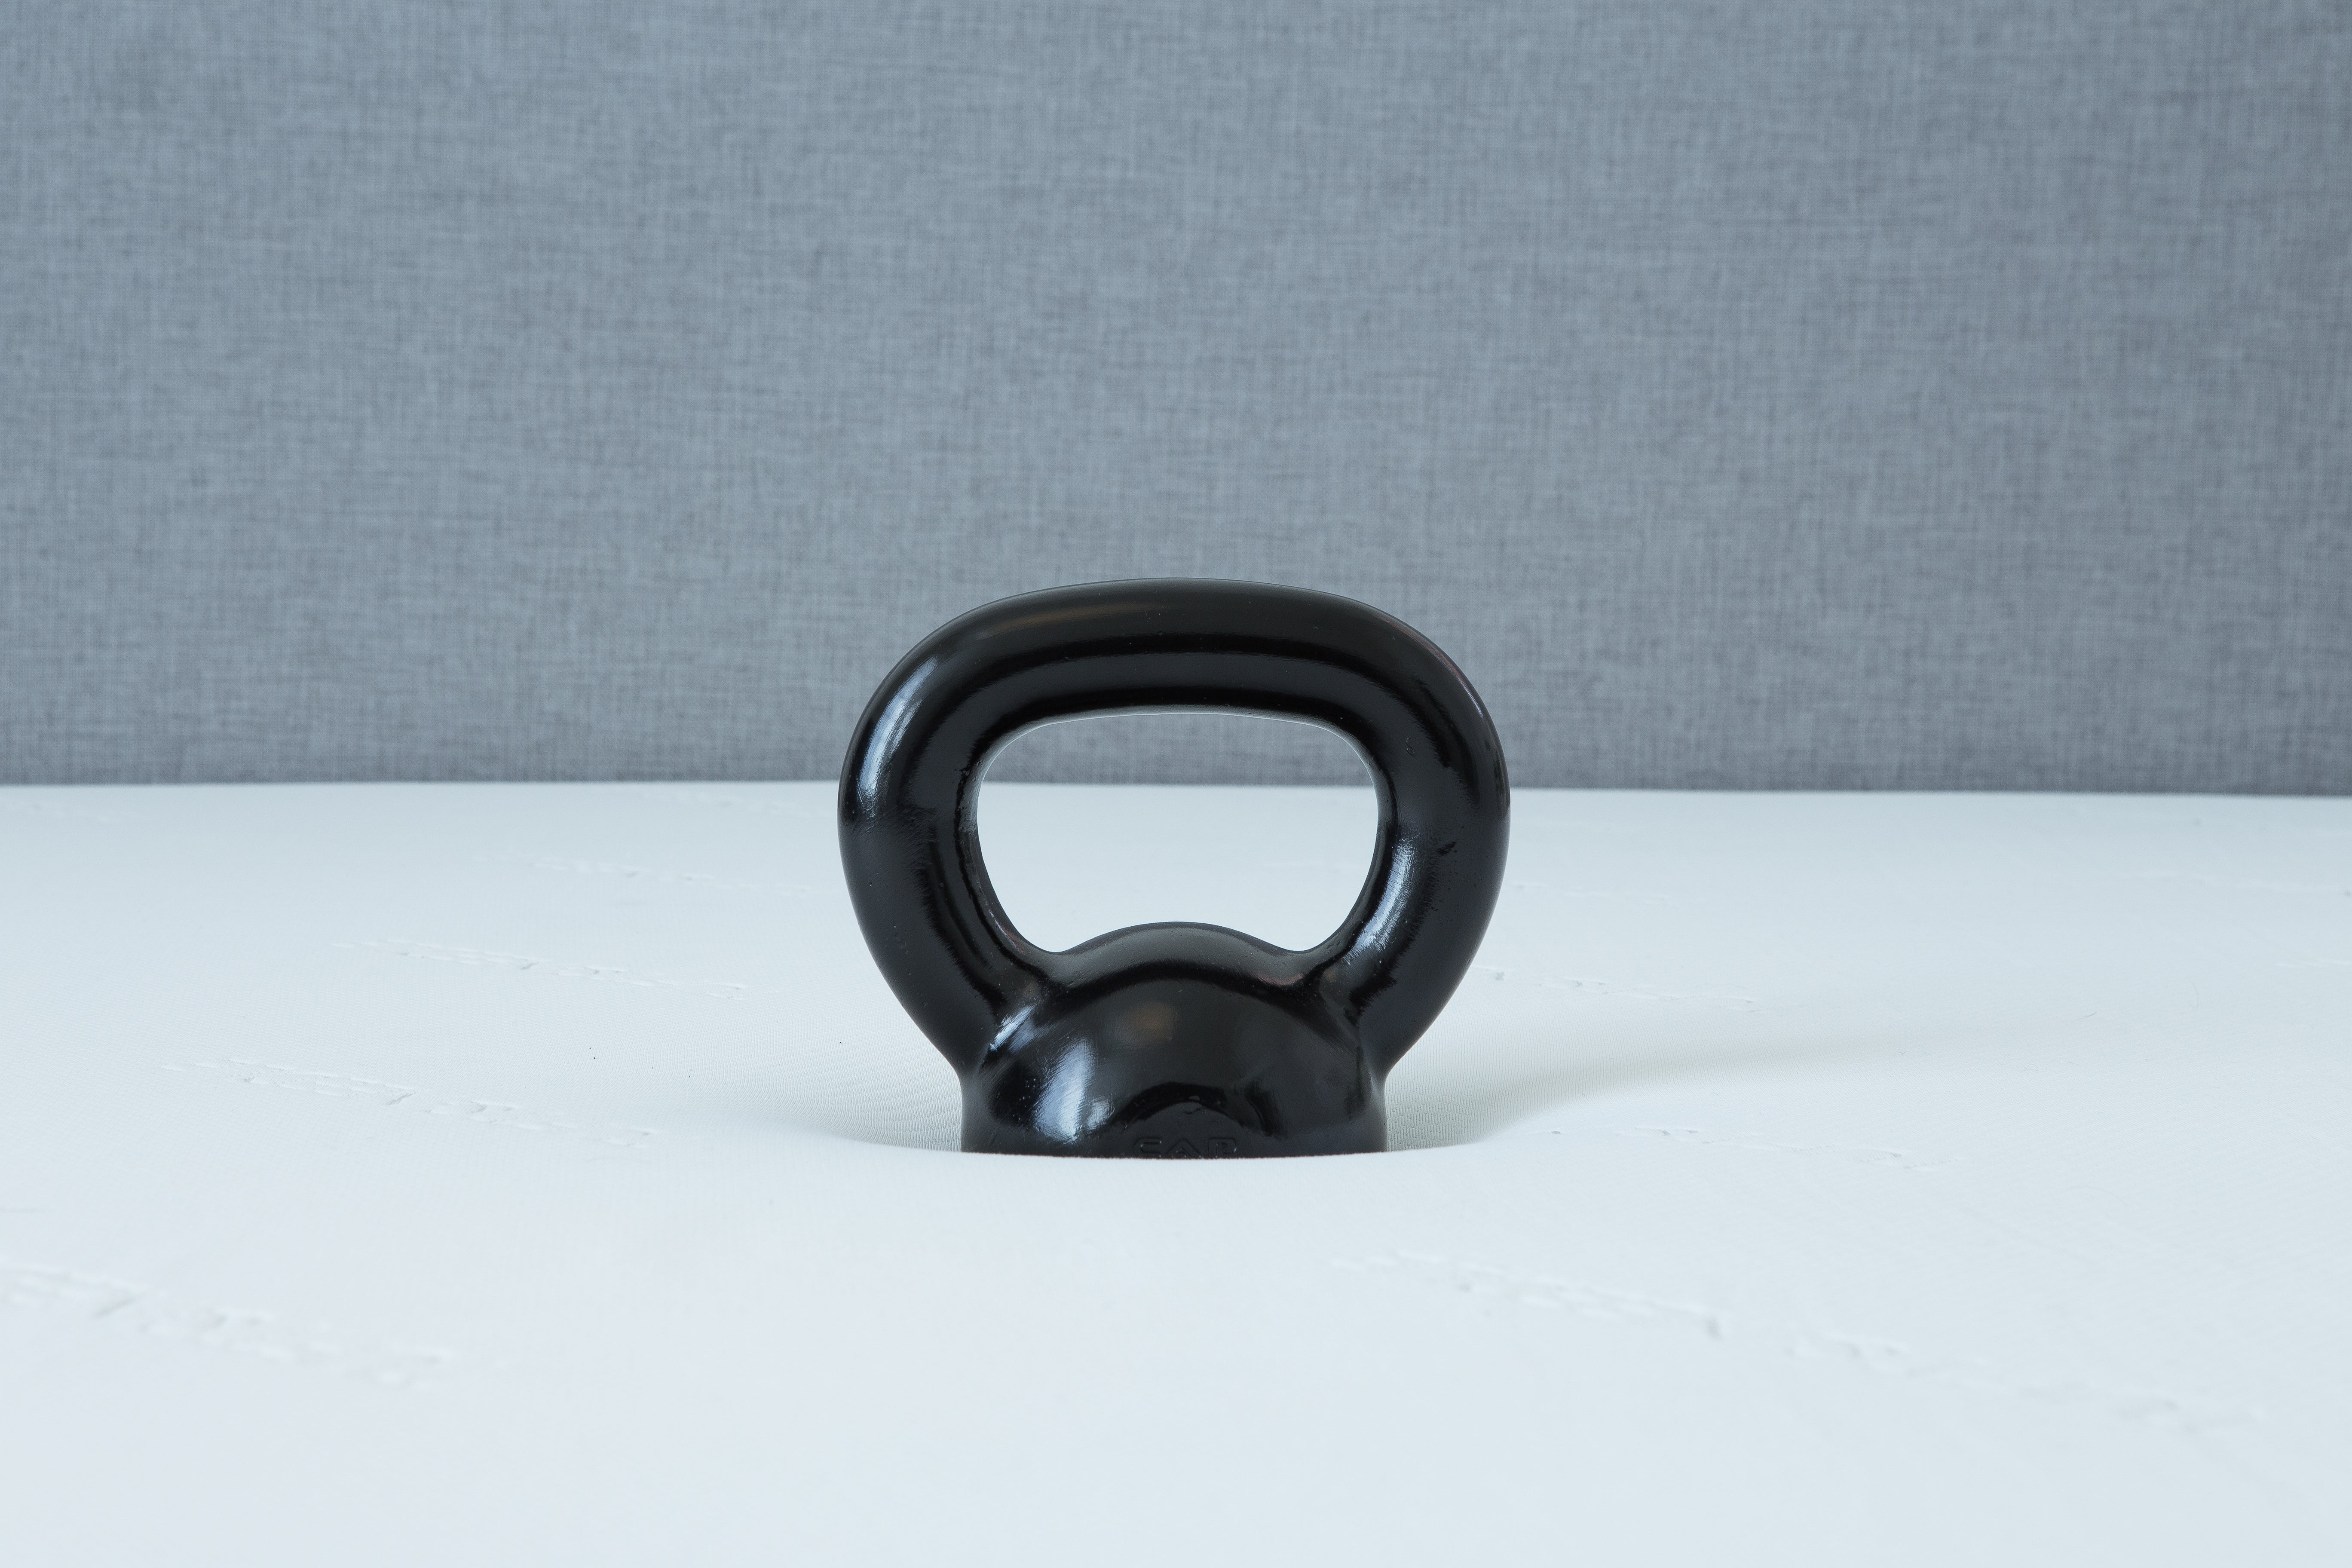 Kettlebell sunk into a Leesa mattress